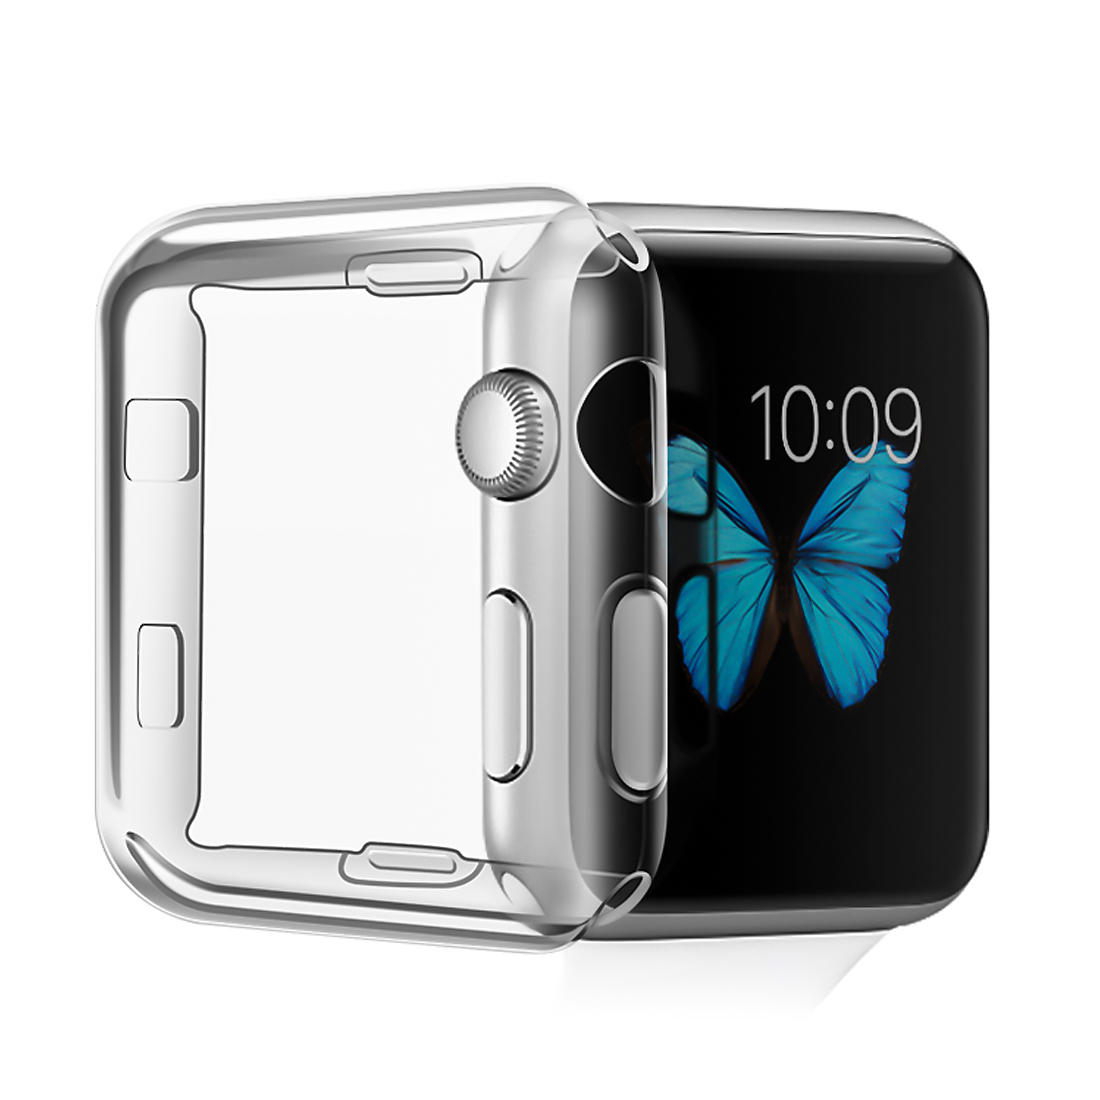 Clear Tpu Full Cover Case Screen Protector For Samsung Galaxy Watch 42 Mm Cell Phones & Accessories Cell Phone Accessories